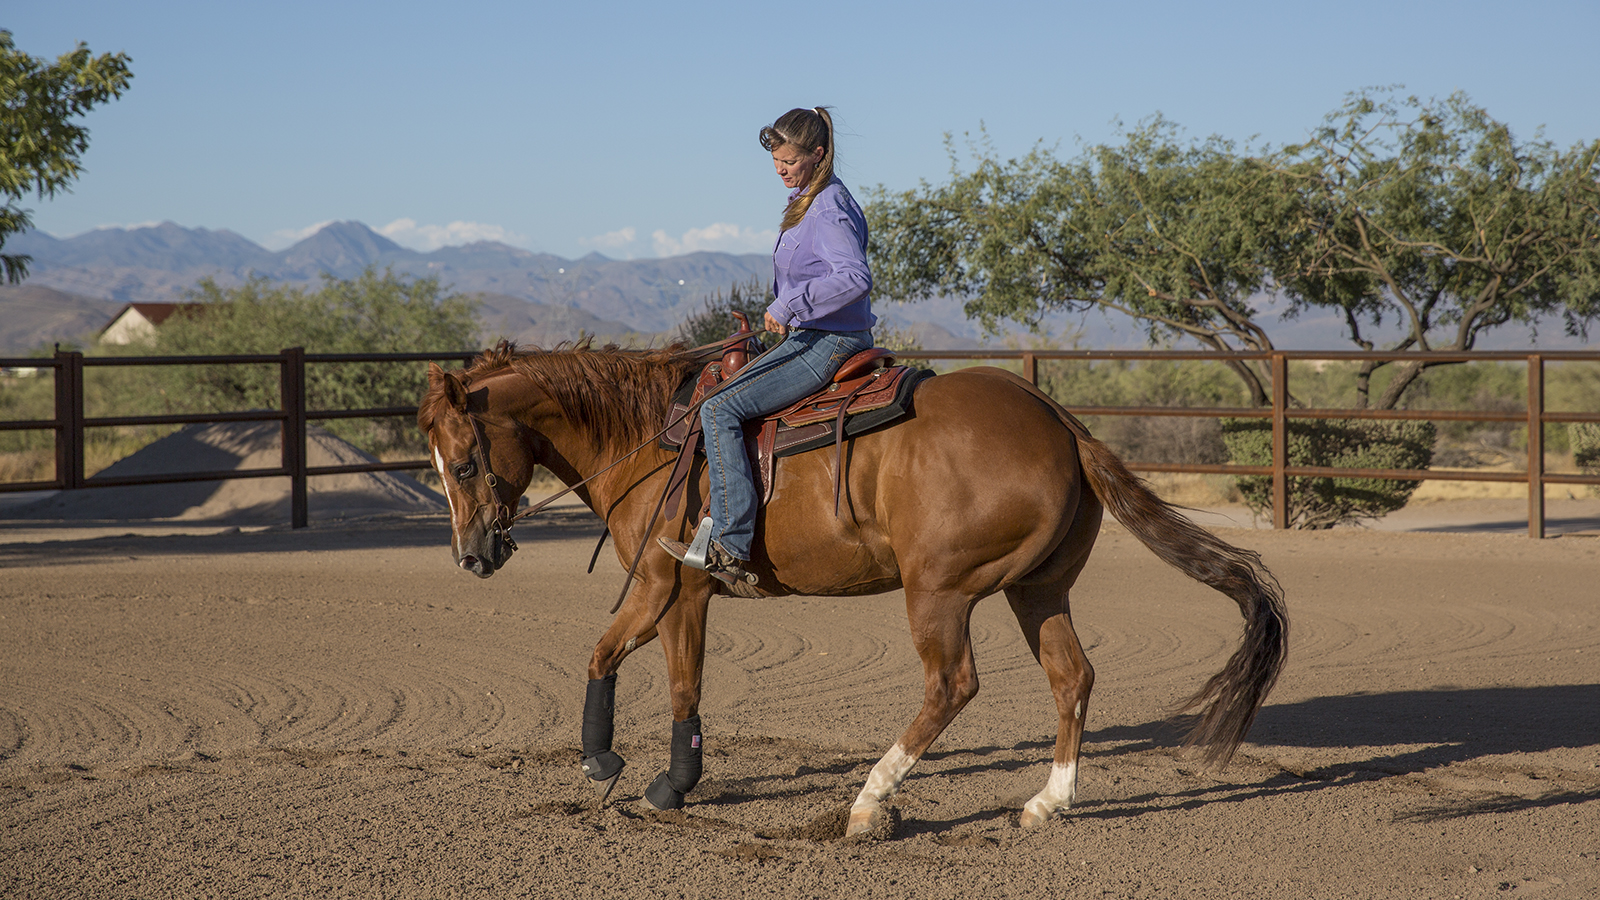 Brandi Lyons remembers a scary equine accident that instilled fear, but eventually taught her better horsemanship and confidence.